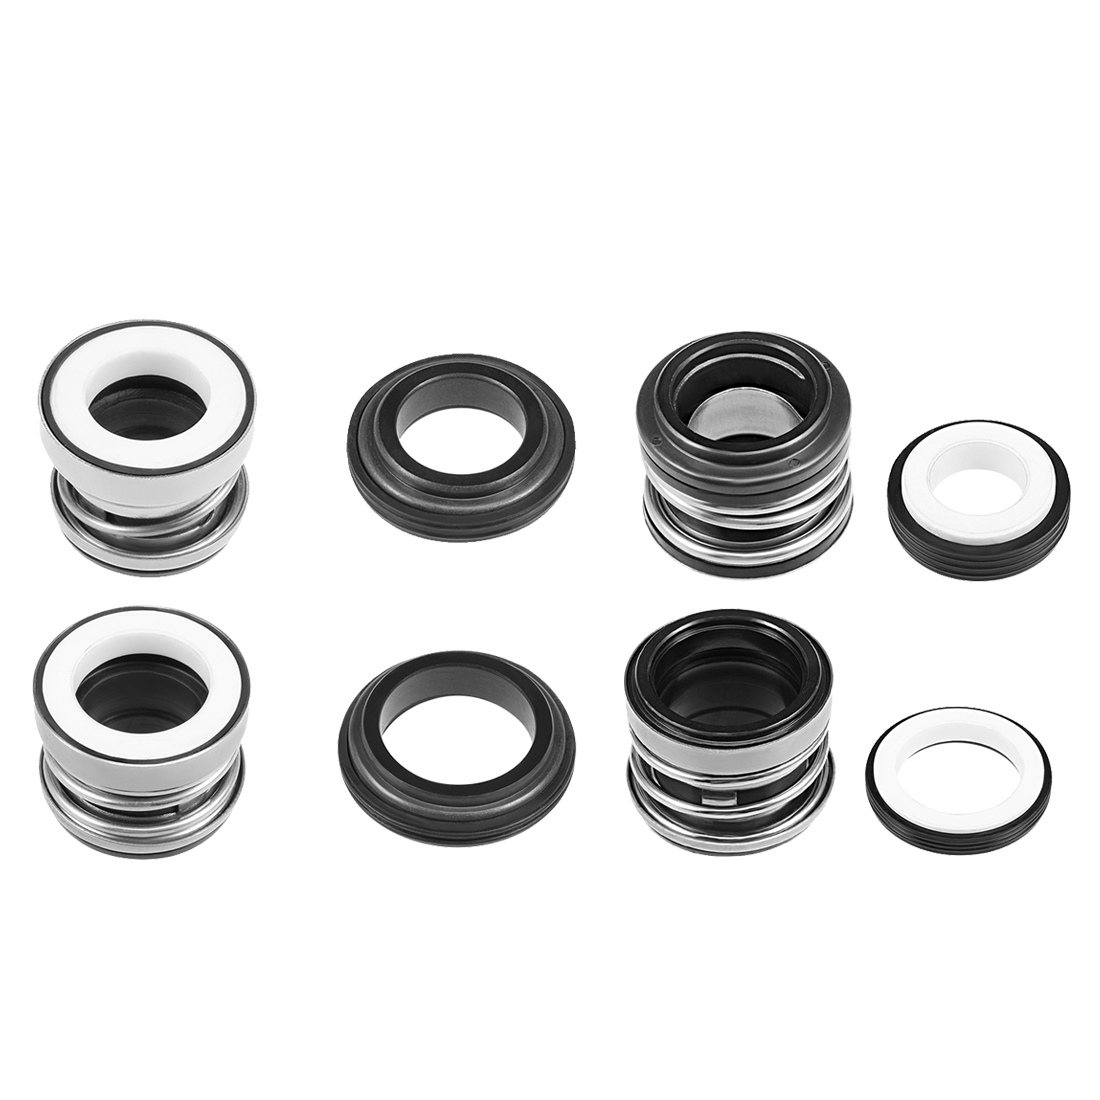 Uxcell 3Pcs Mechanical Shaft Seal Replacement For Pool Spa Pump Work In Water Oil And Other Weakly Corrosive Media Pumps